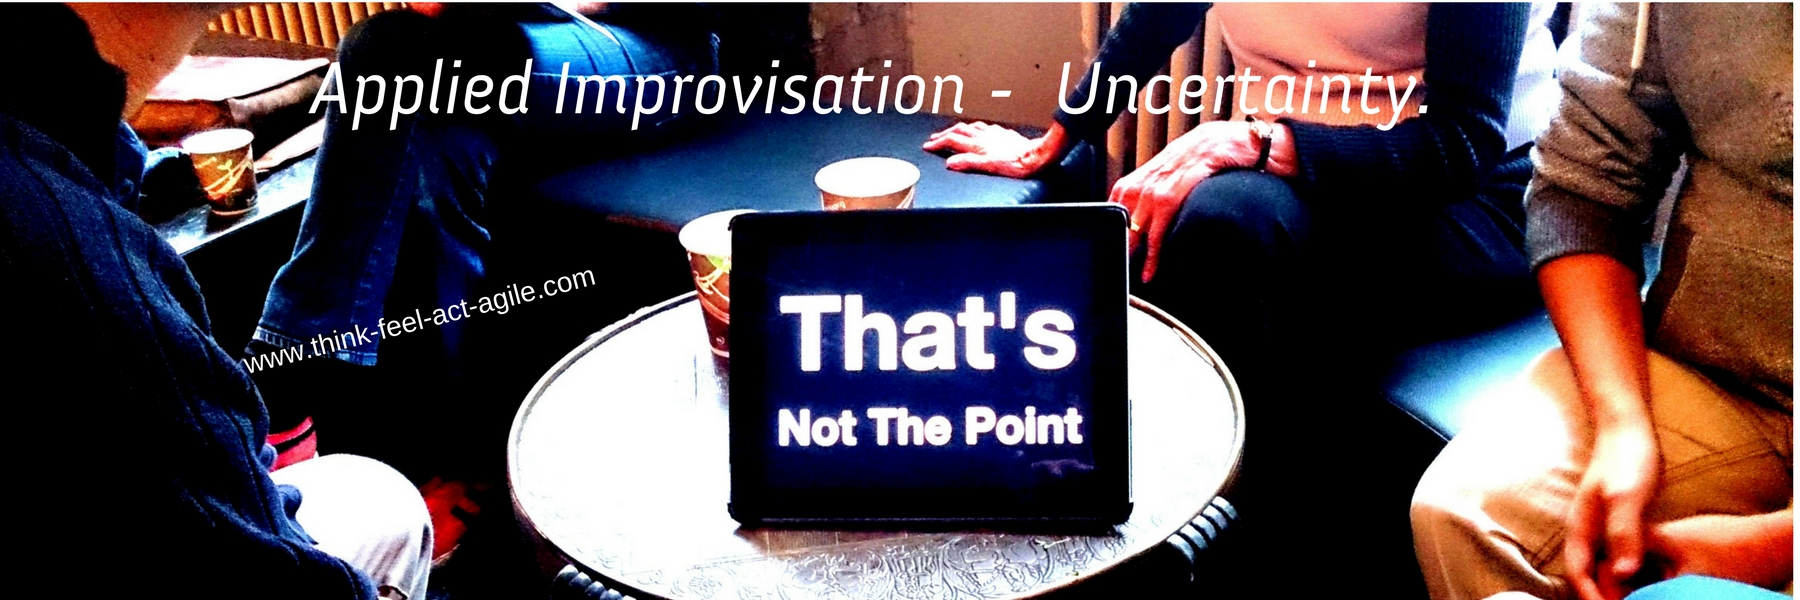 Applied Improv-Agile_thats not the point